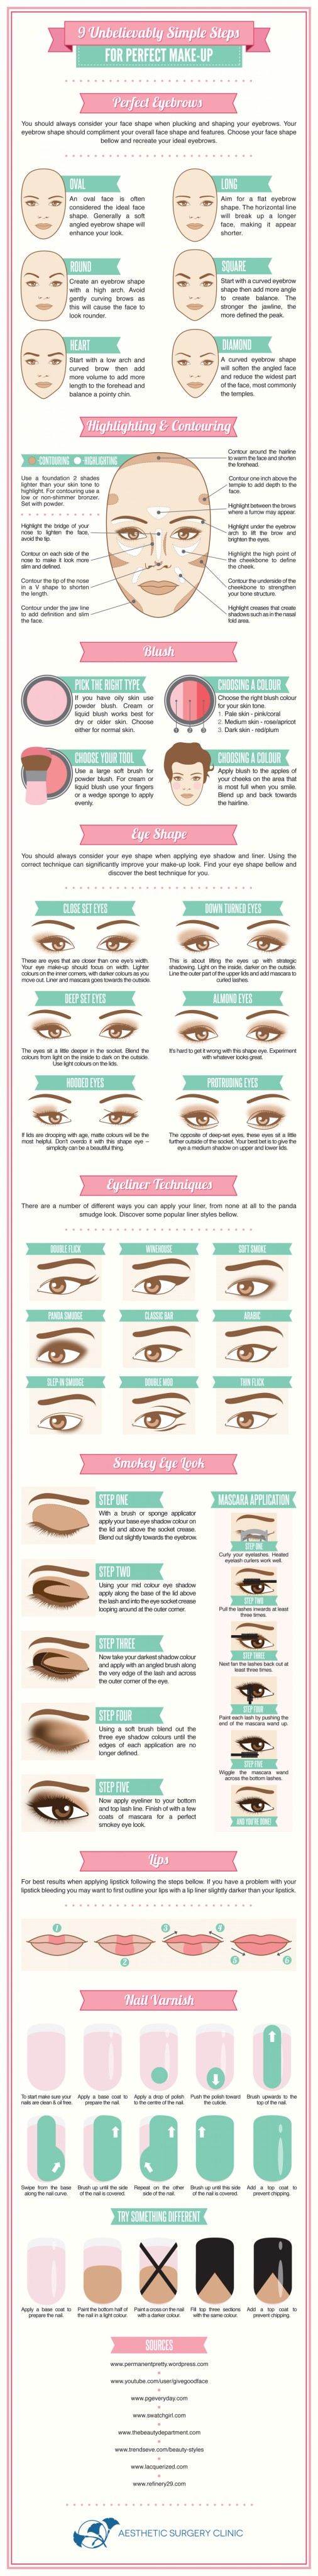 9 Unbelievably Simple Steps For Perfect Make-Up | From Visual.ly